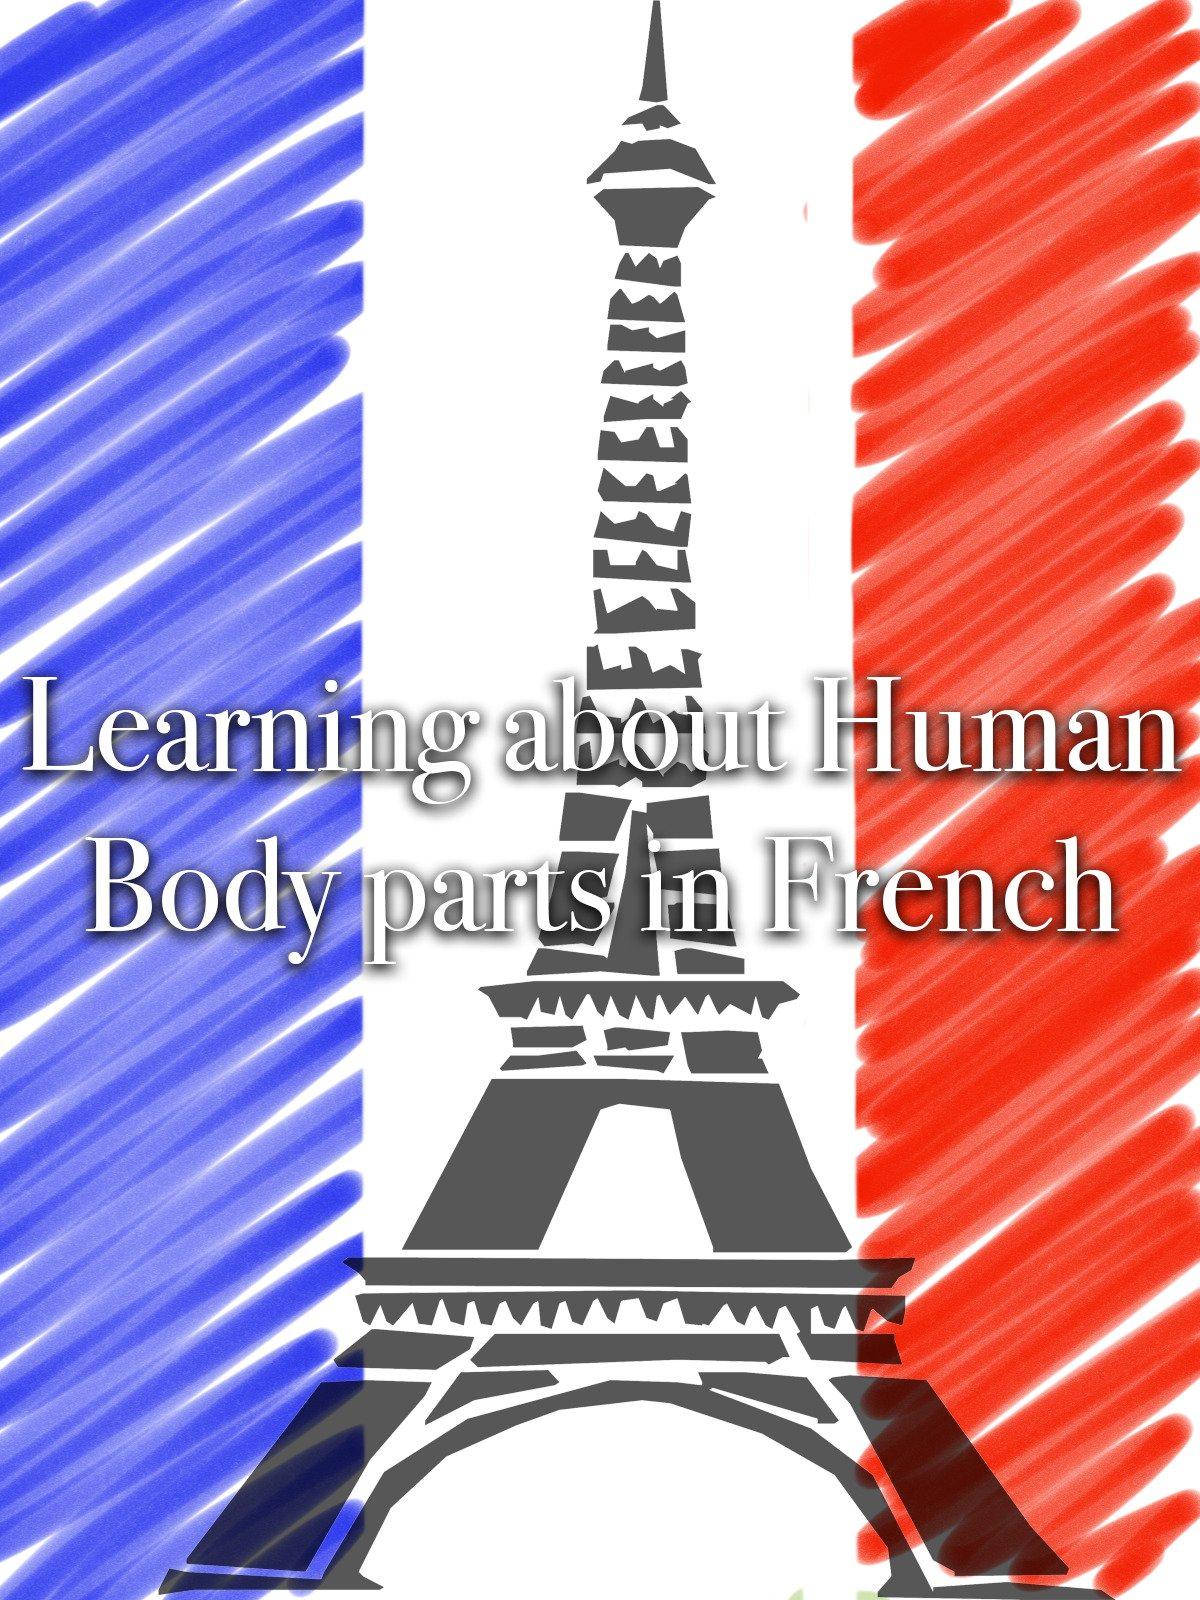 Learning about Human Body parts in French